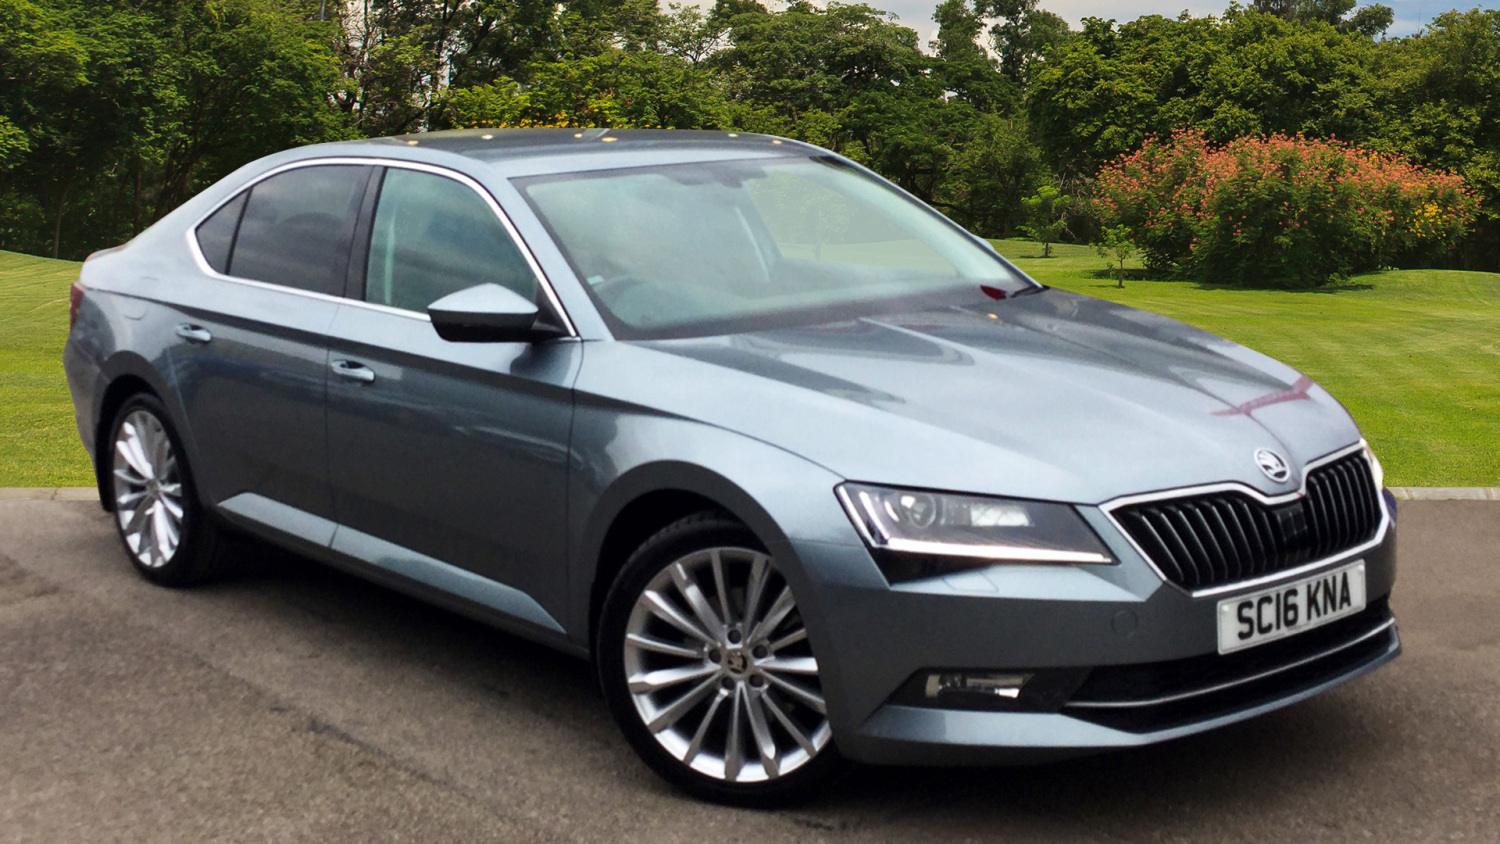 buy online skoda superb 2 0 tdi cr 190 se l executive 5dr dsg diesel hatchback for sale. Black Bedroom Furniture Sets. Home Design Ideas